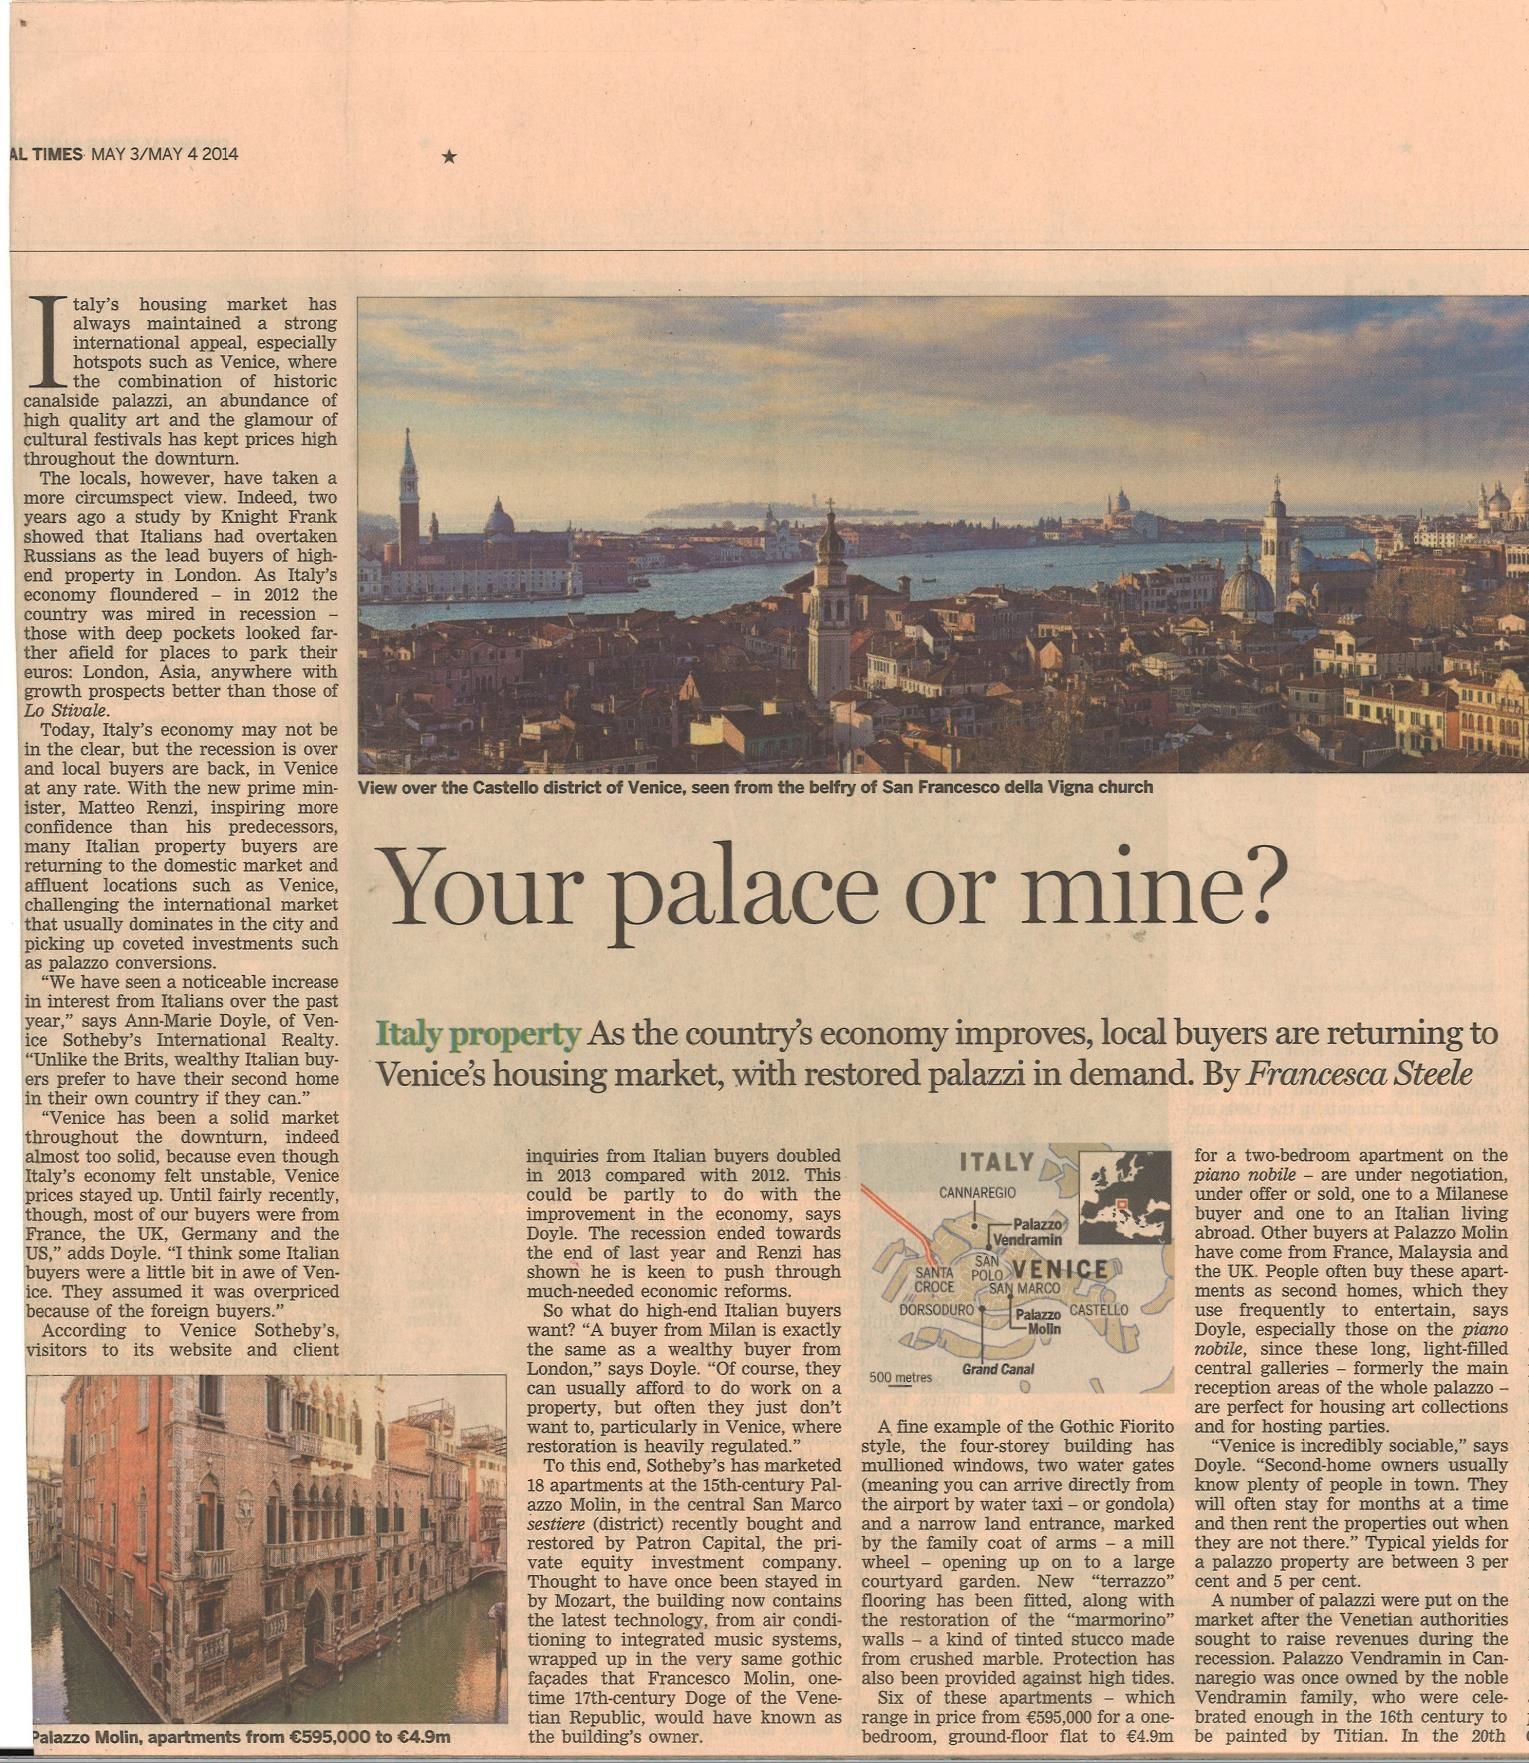 Pdf: Restored Palazzo in Venice as a second home for local and international property buyers - Stonehard